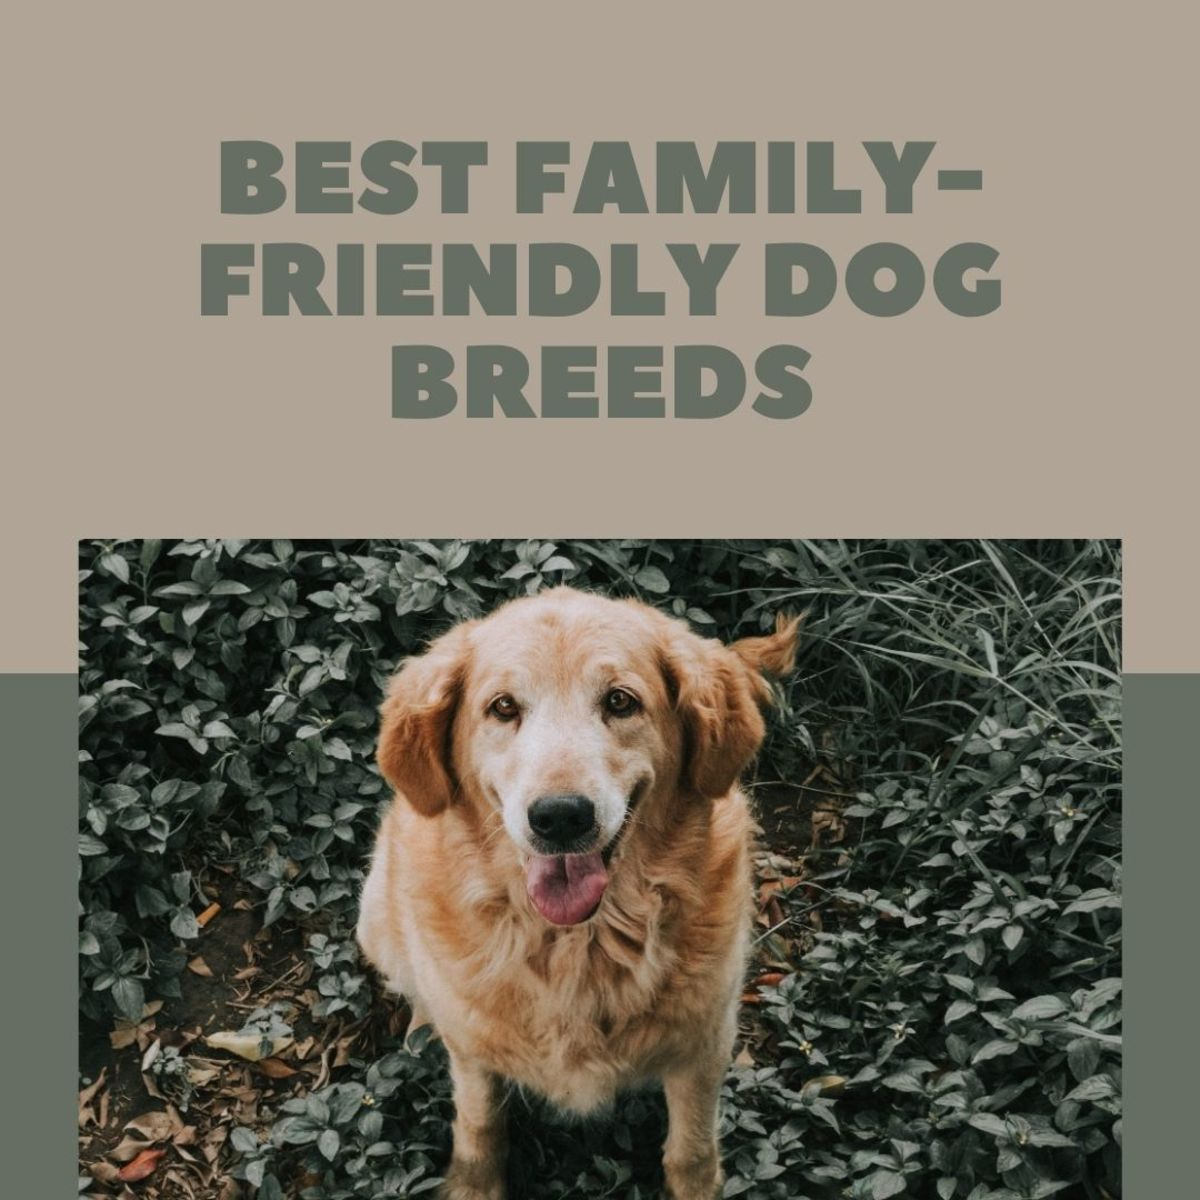 What are the best dog breeds for a family with kids?